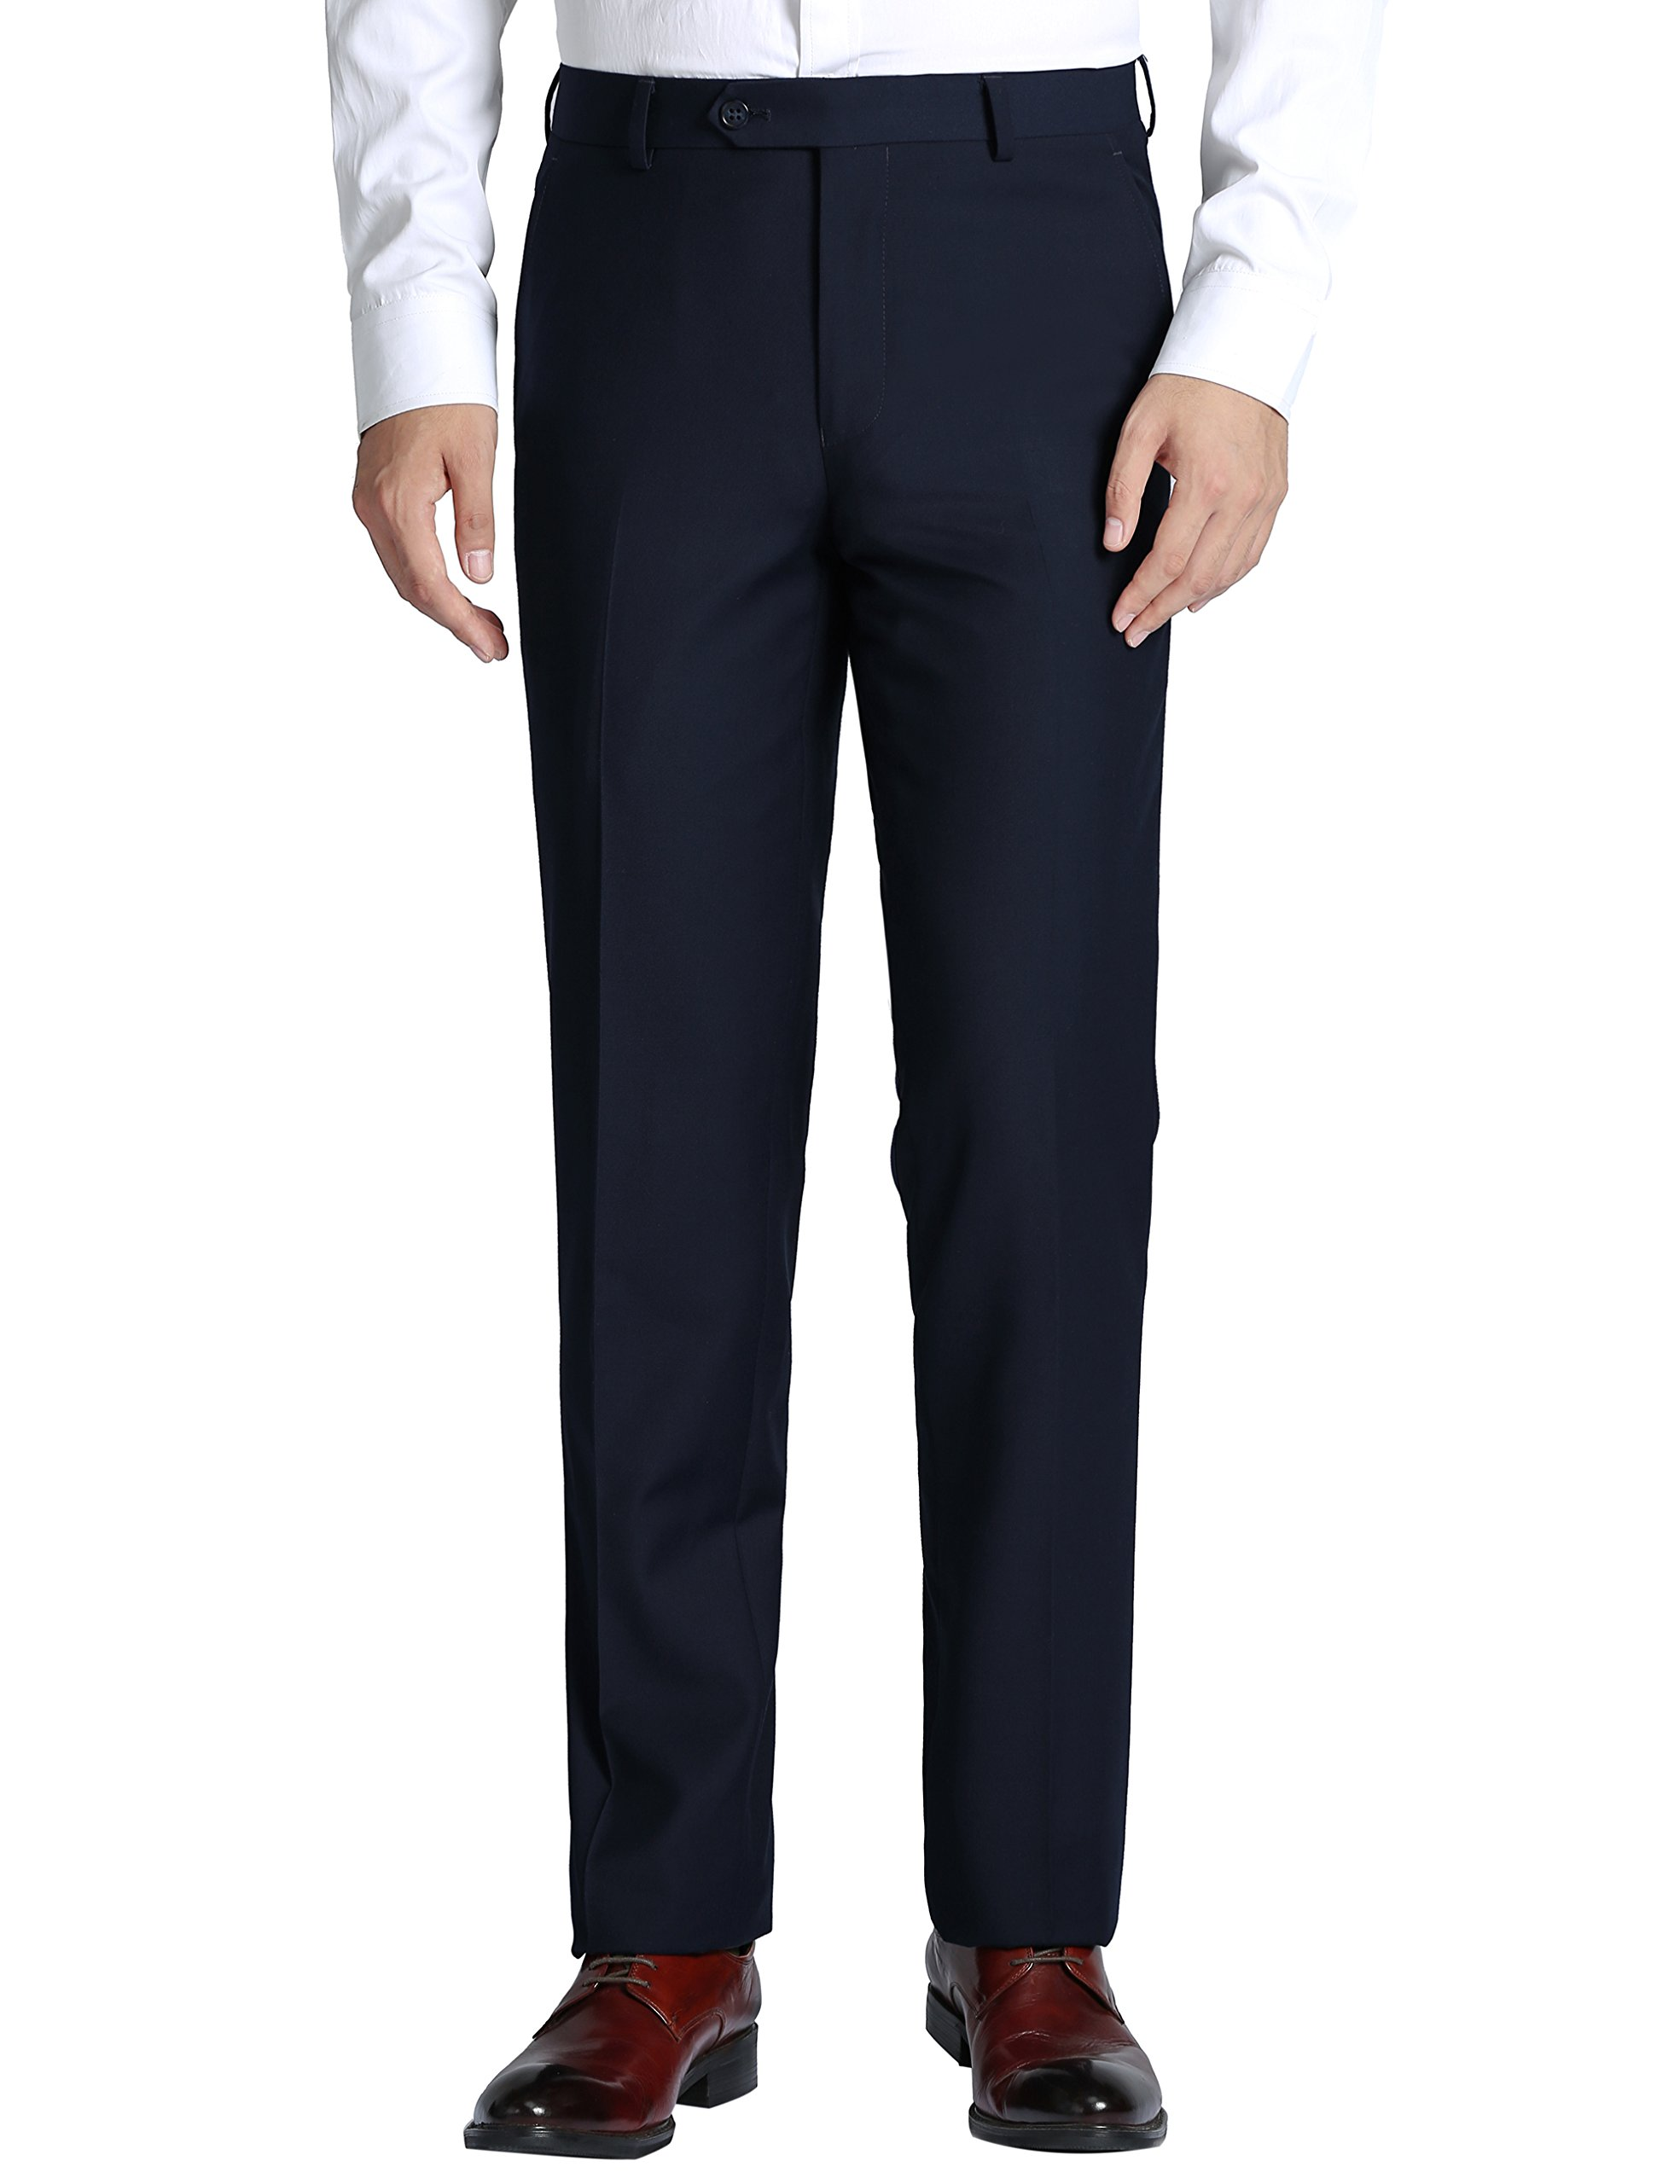 Chama Men's Classic Fit Non Iron Flat Front Dress Pant- Unhemmed (Dark Navy, 50R)